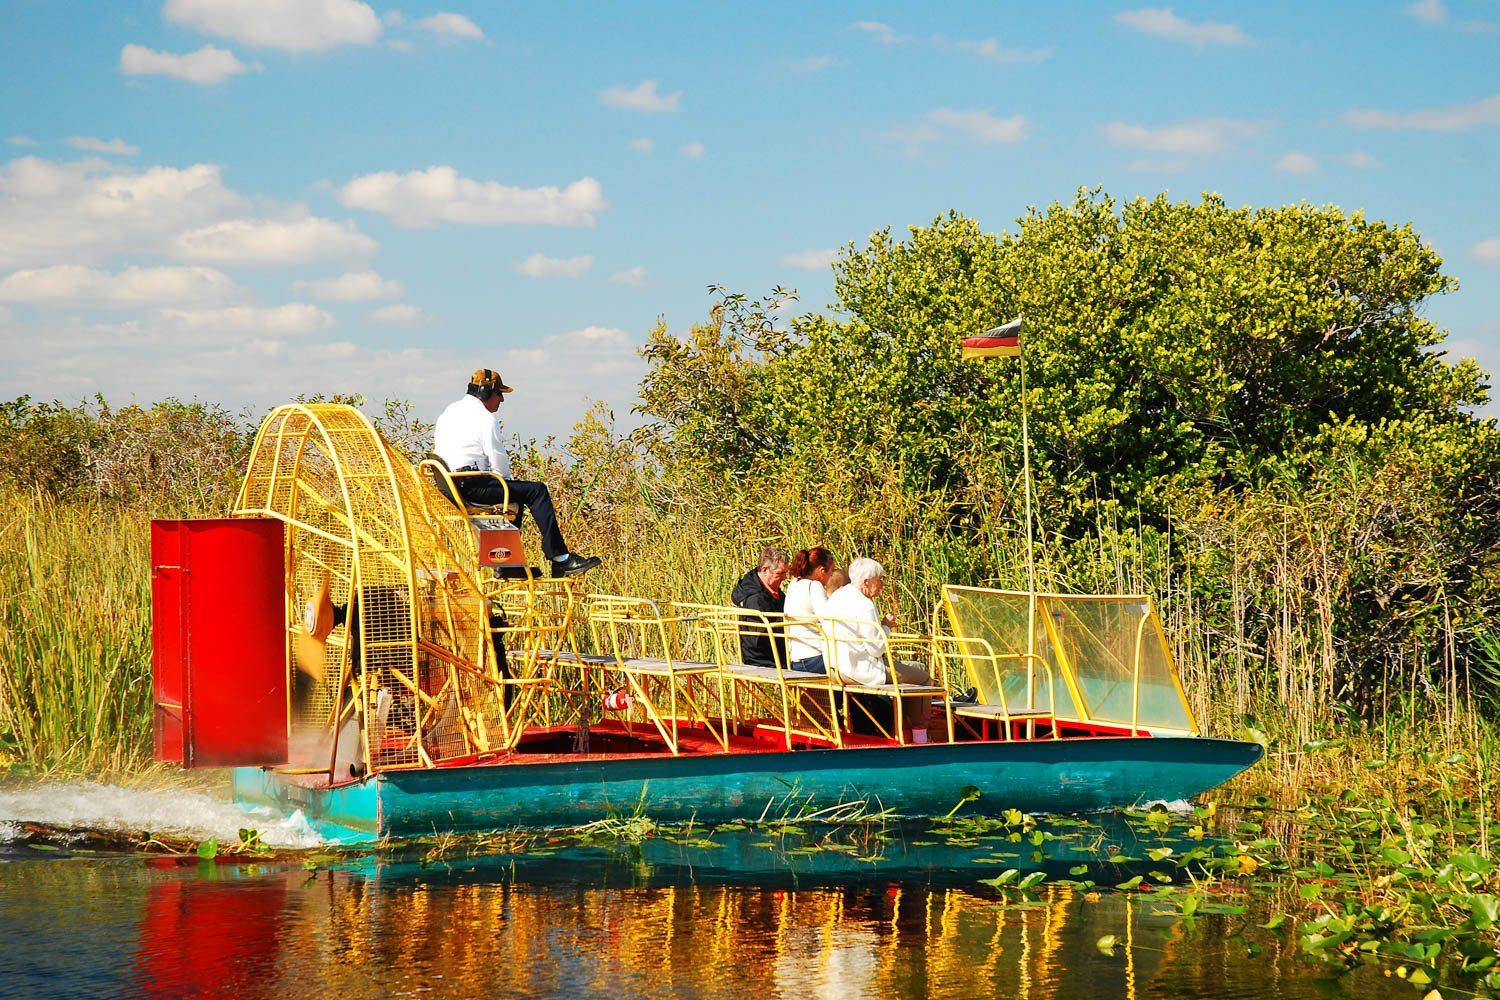 Everglades tours are one of the popular things to do in South Florida. If looking for fascinating places to visit in Florida, look no further.